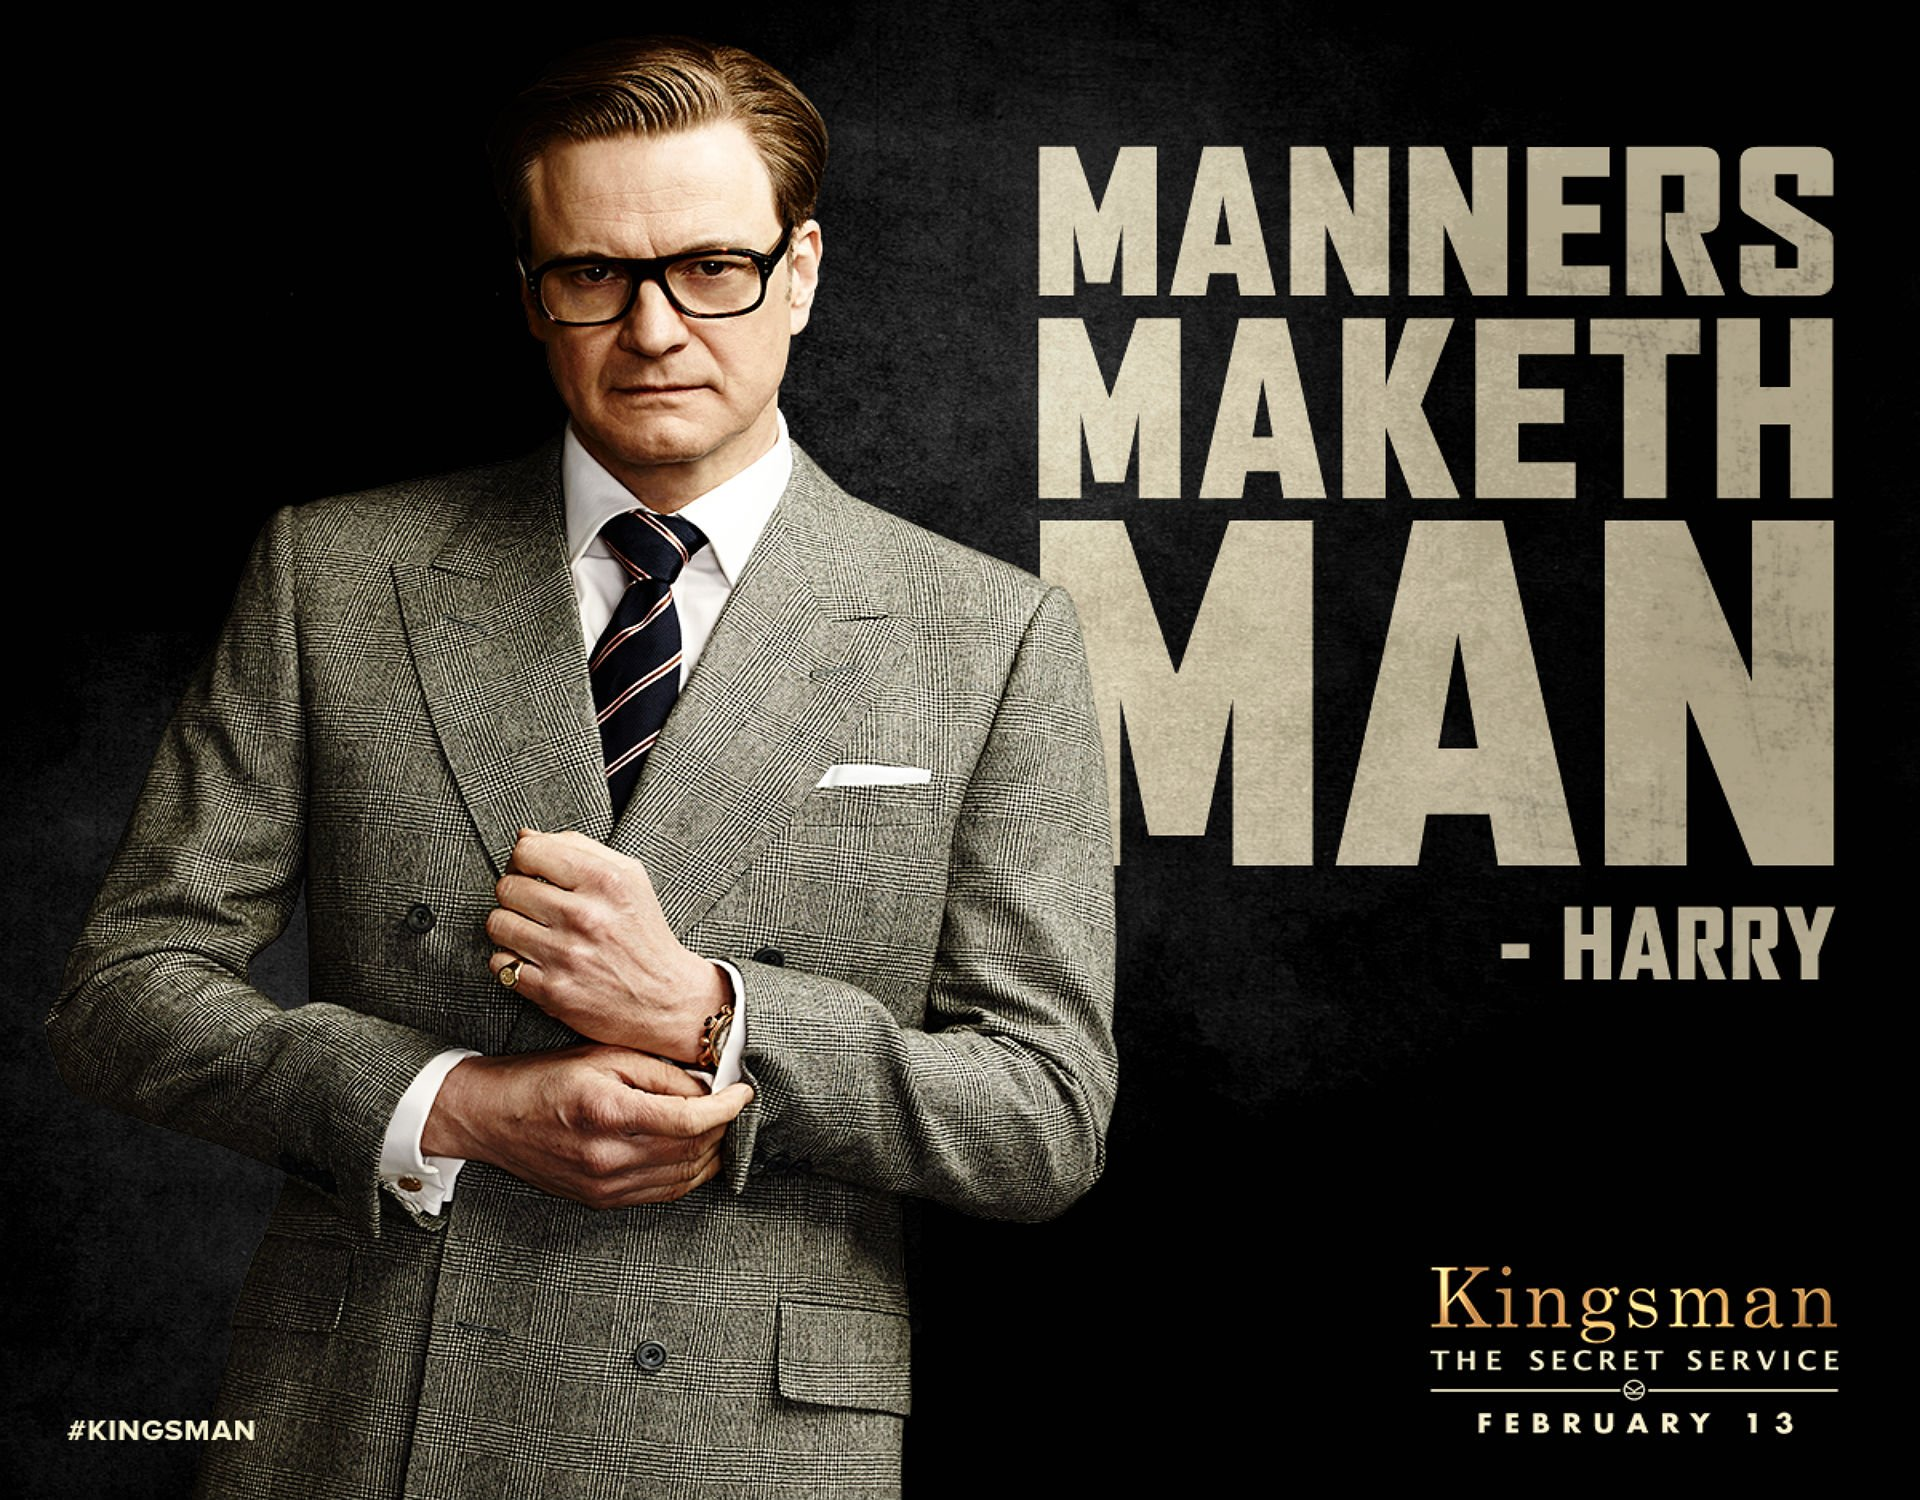 kingsman-the-secret-service-images-hd